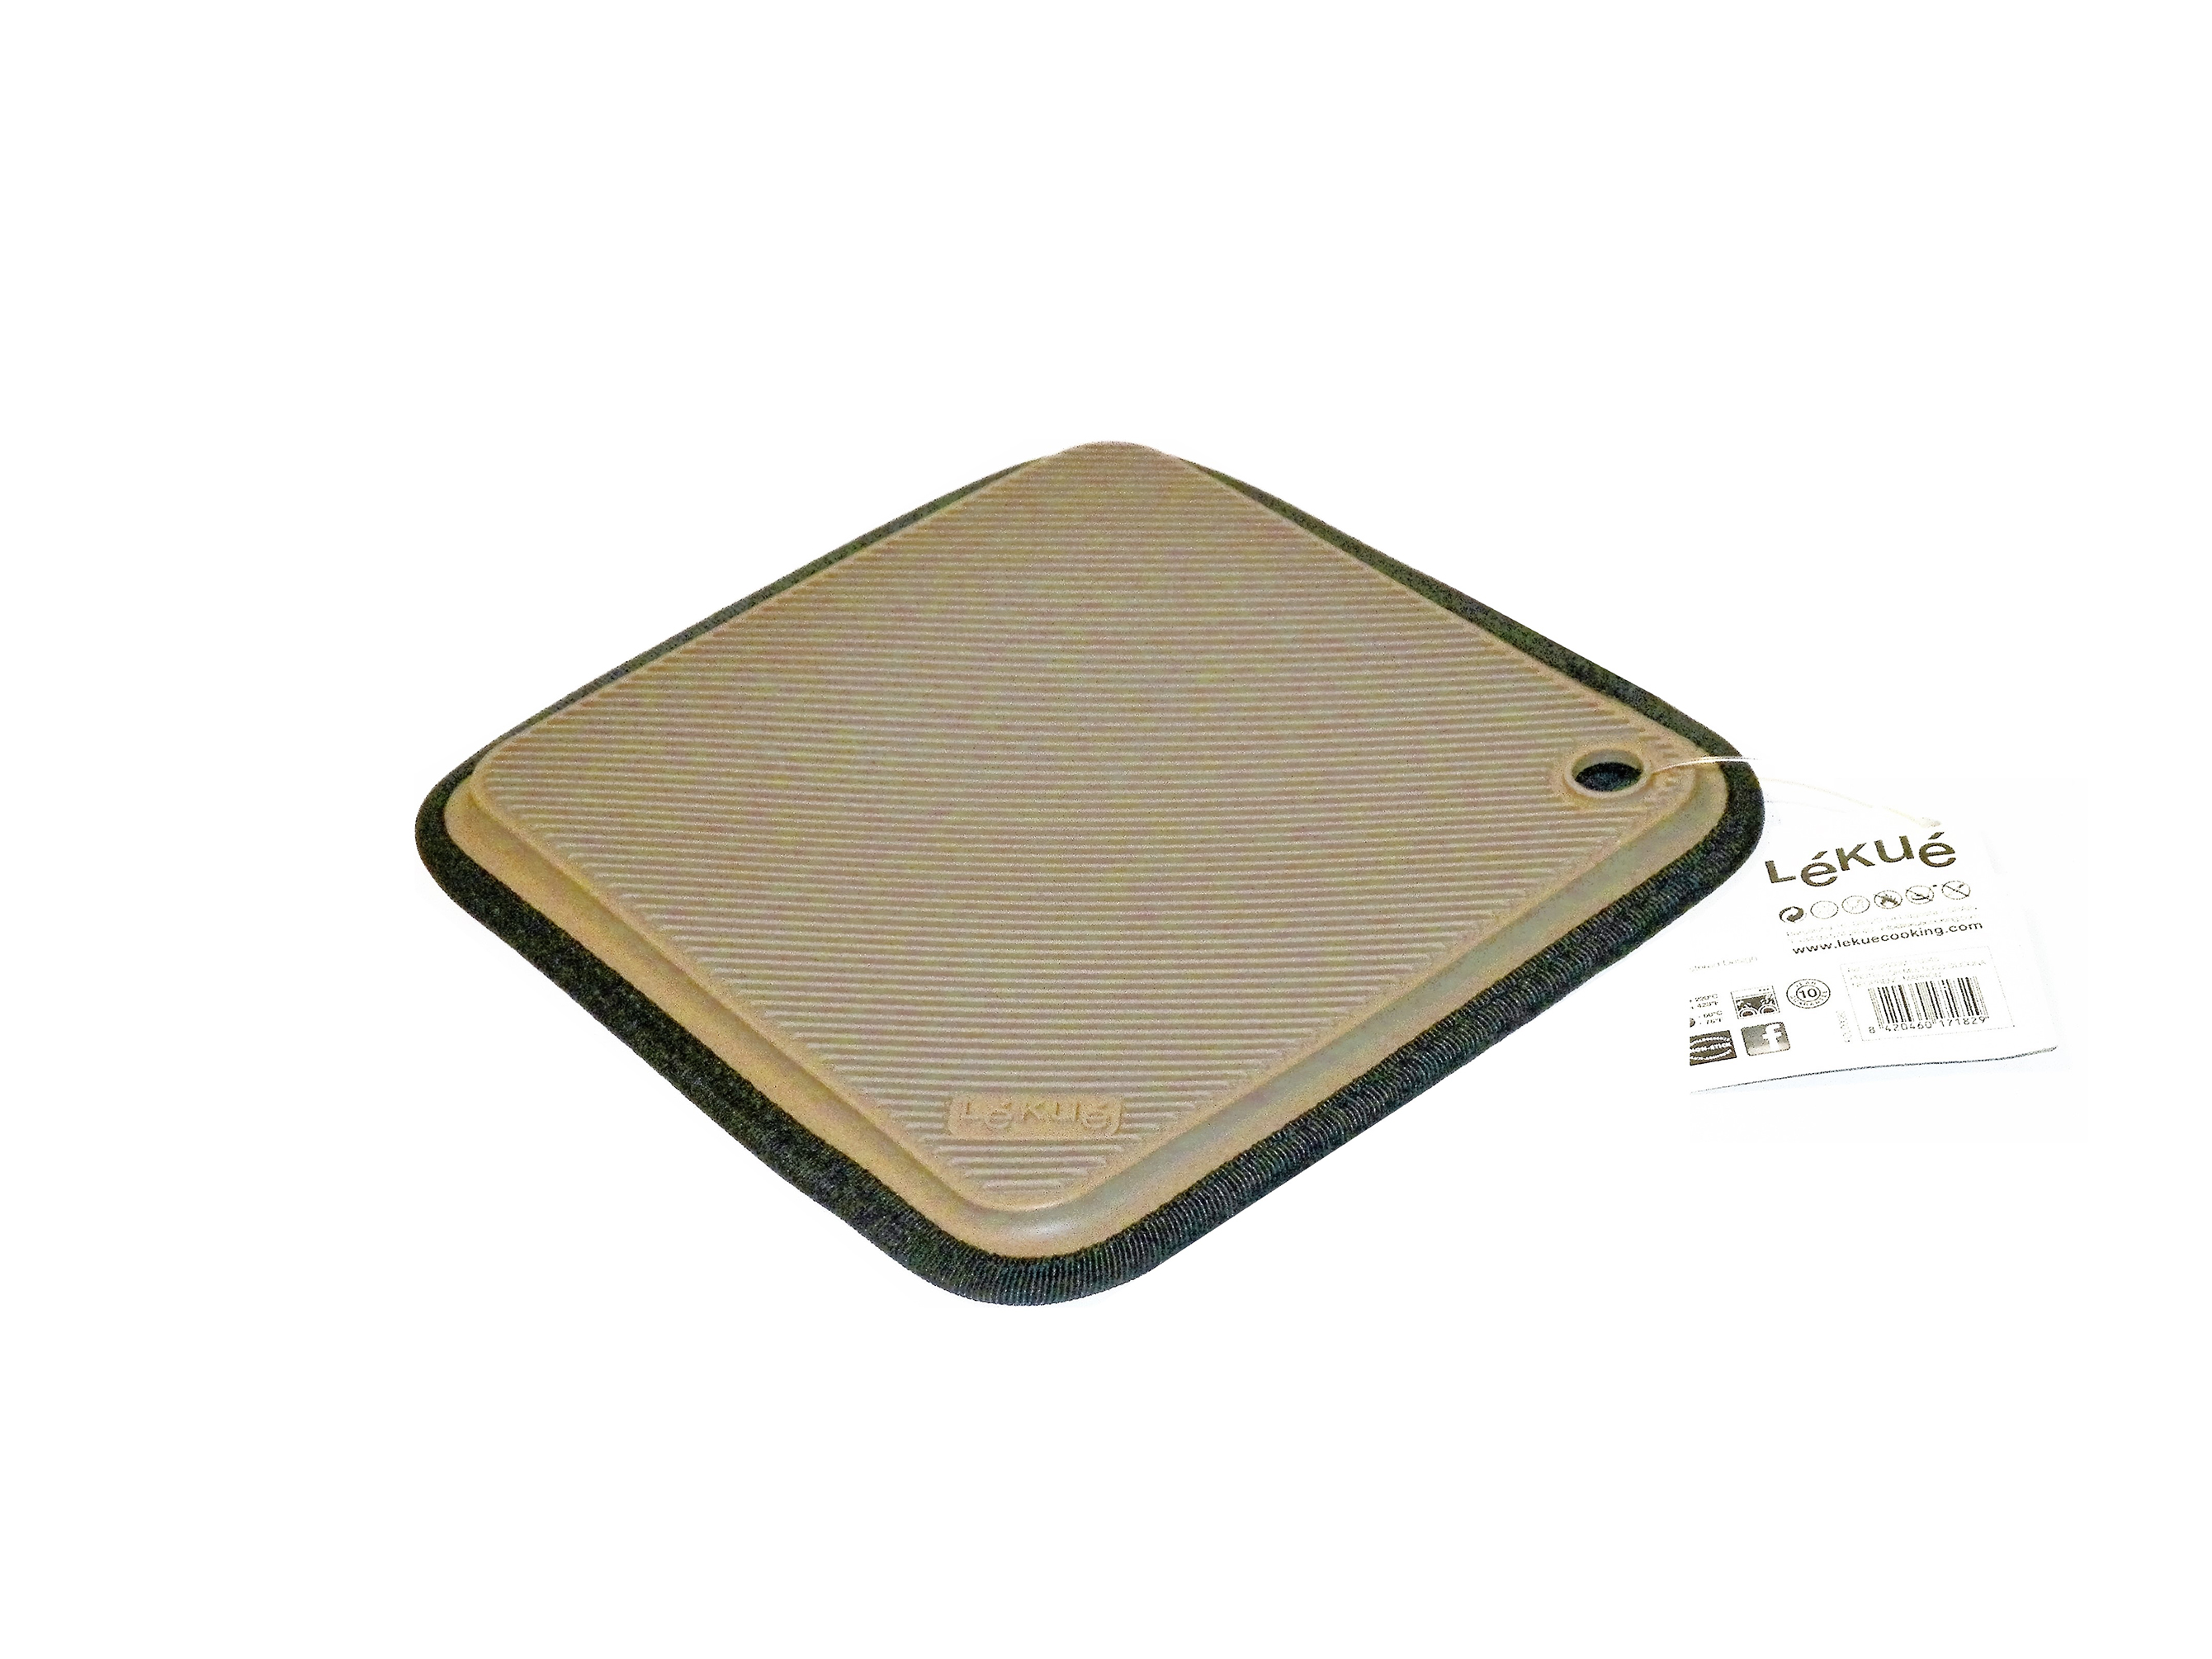 PROTECTOR MULTIUSOS NEOPRENO MARRON